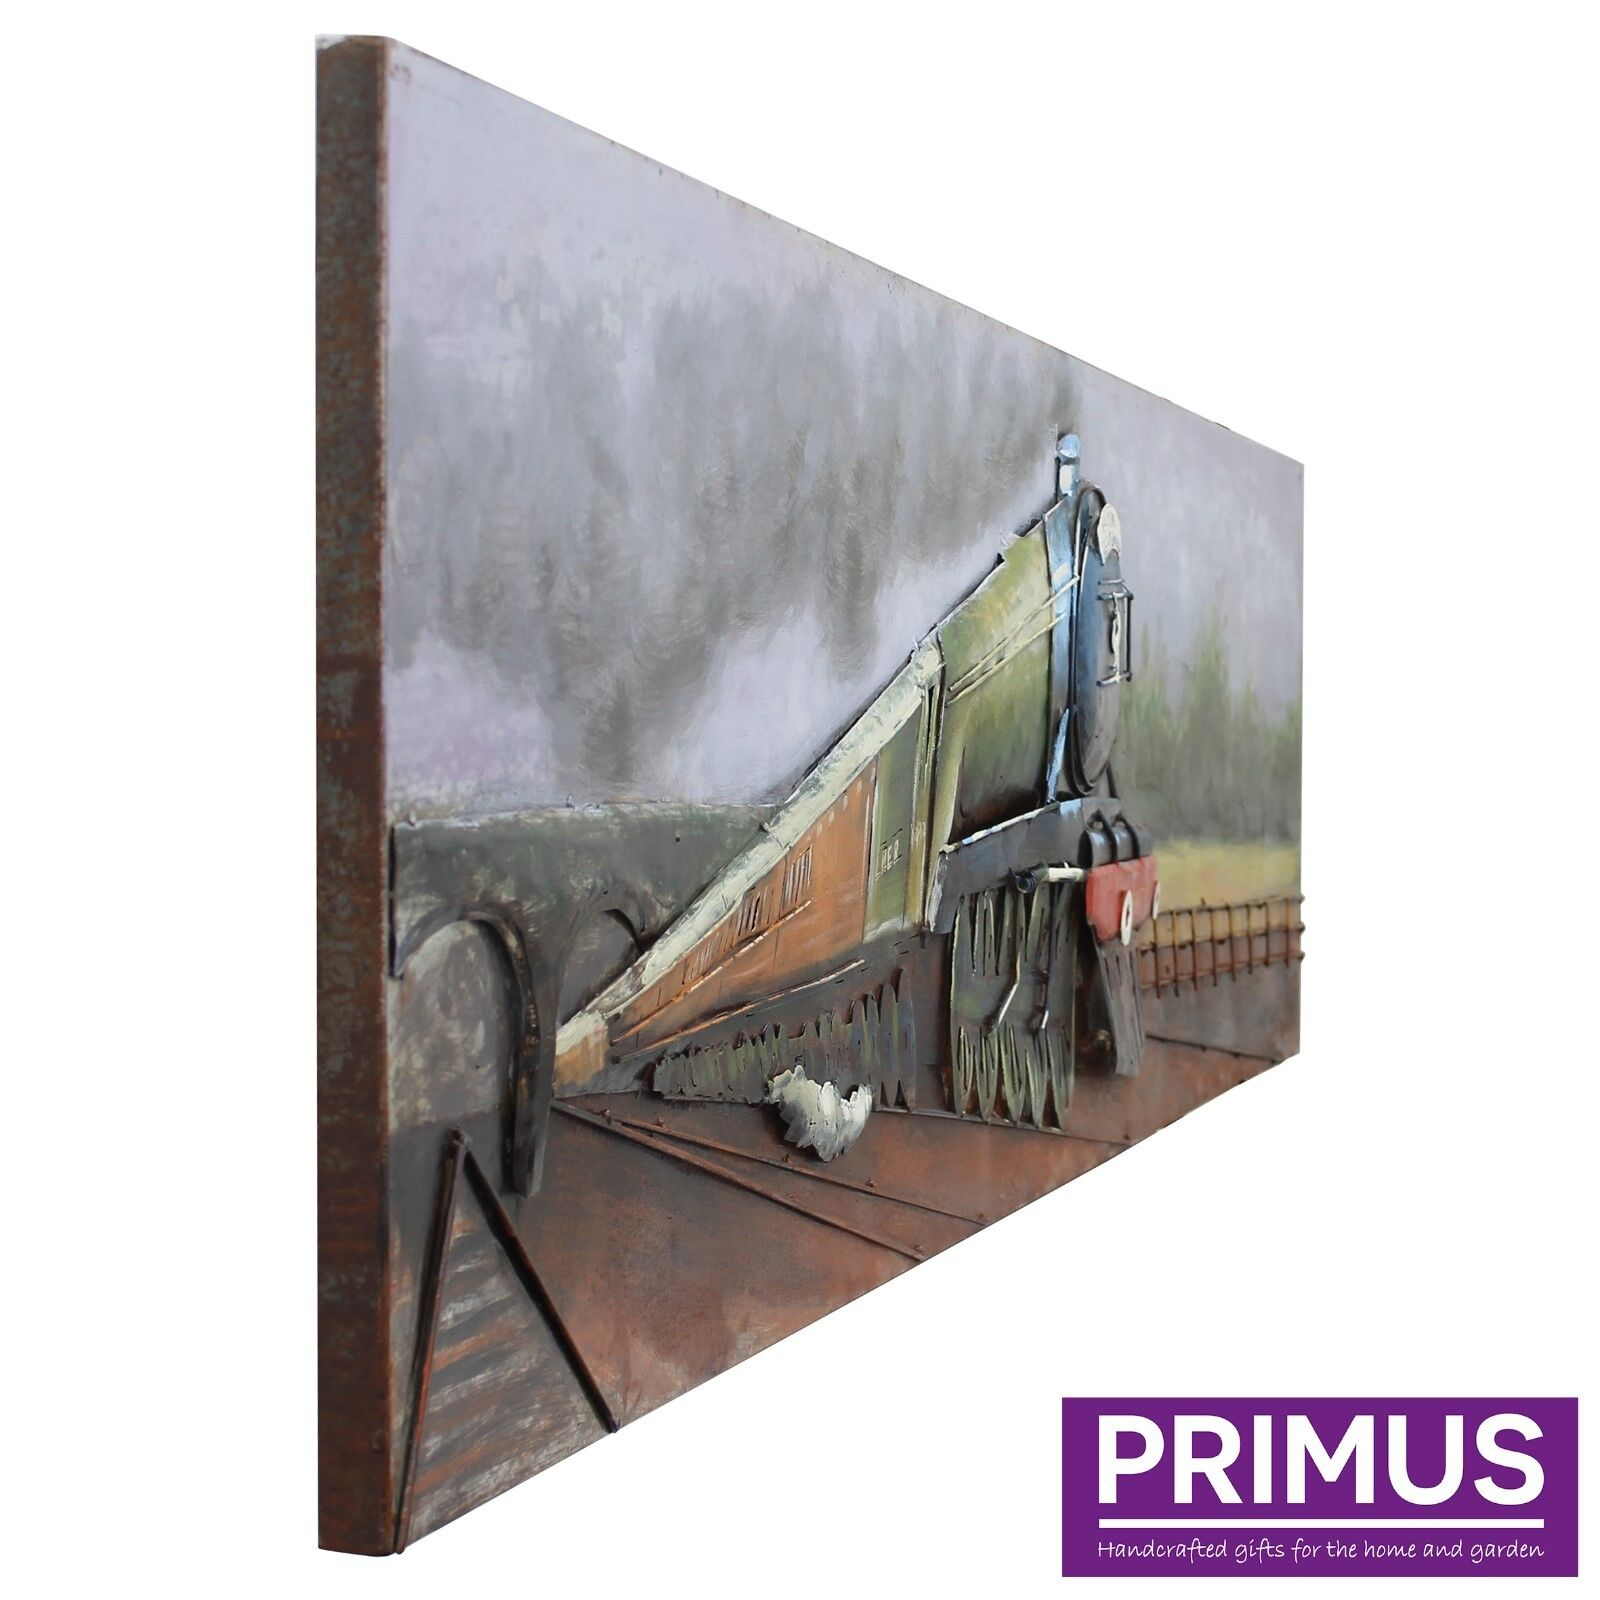 Primus The Flying Flying Flying ScotsFemme 3D Hand Crafted Métal Wall Art/Sculpture SUPERBE! | économique Et Pratique